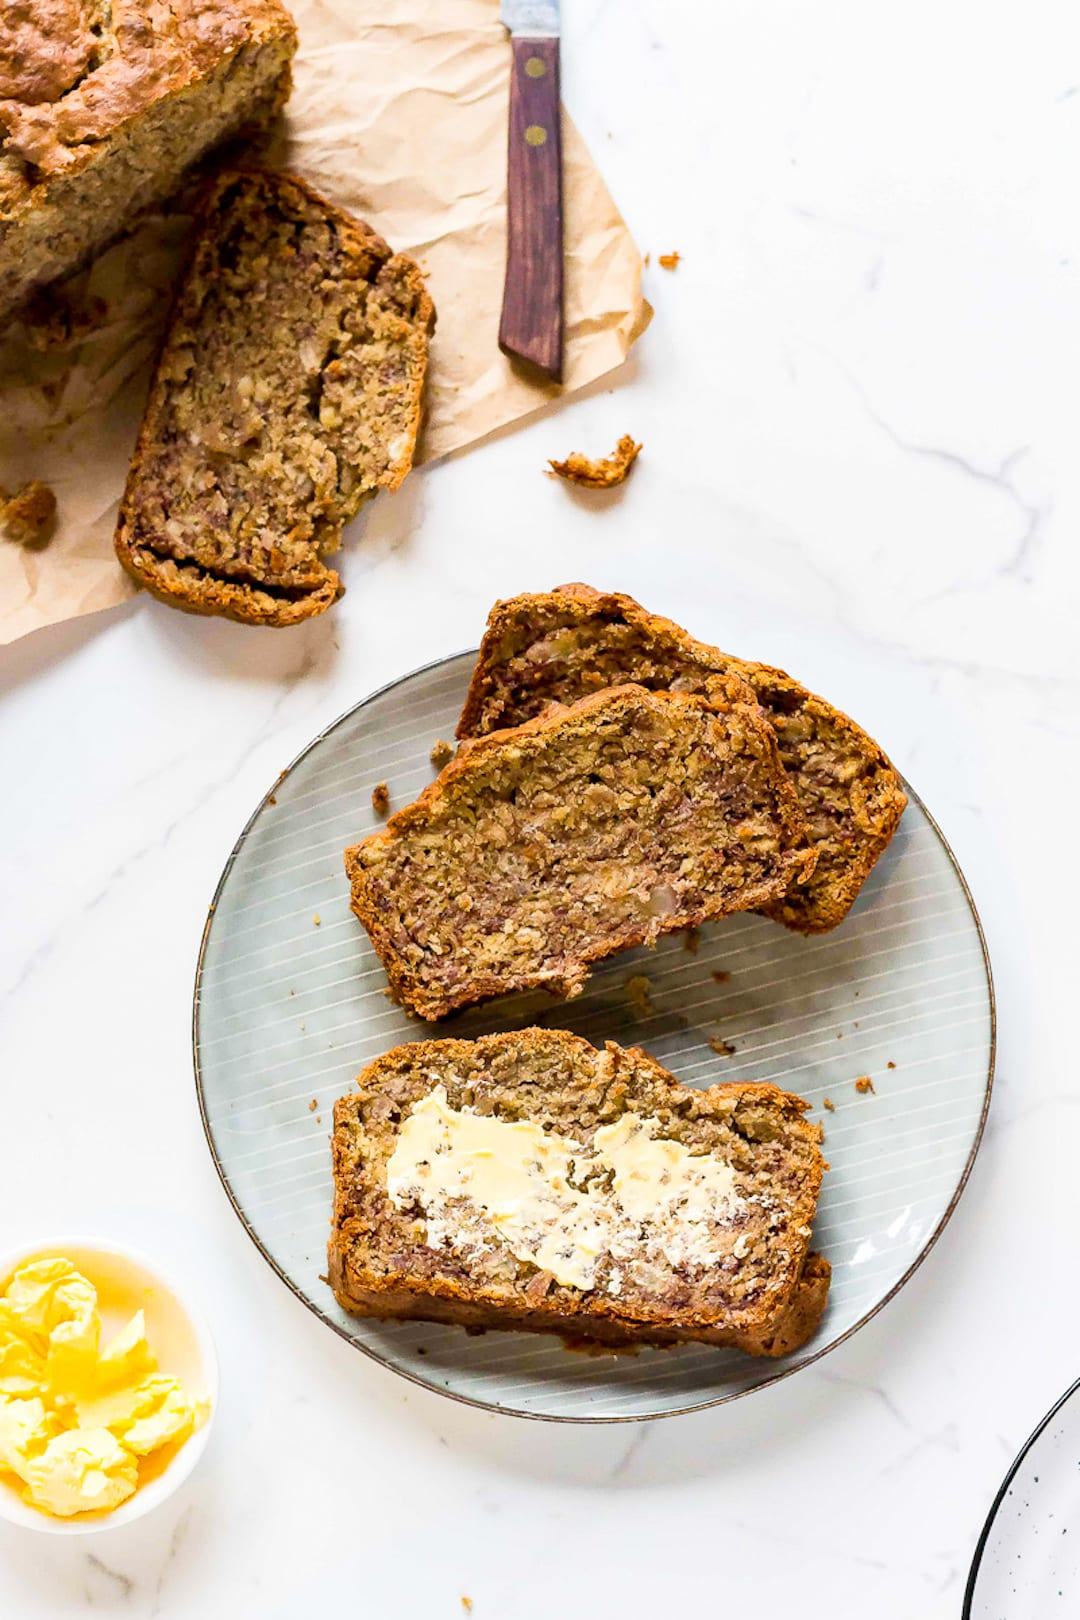 Low Fodmap Banana Bread - 18 Delicious Low Fodmap Snacks